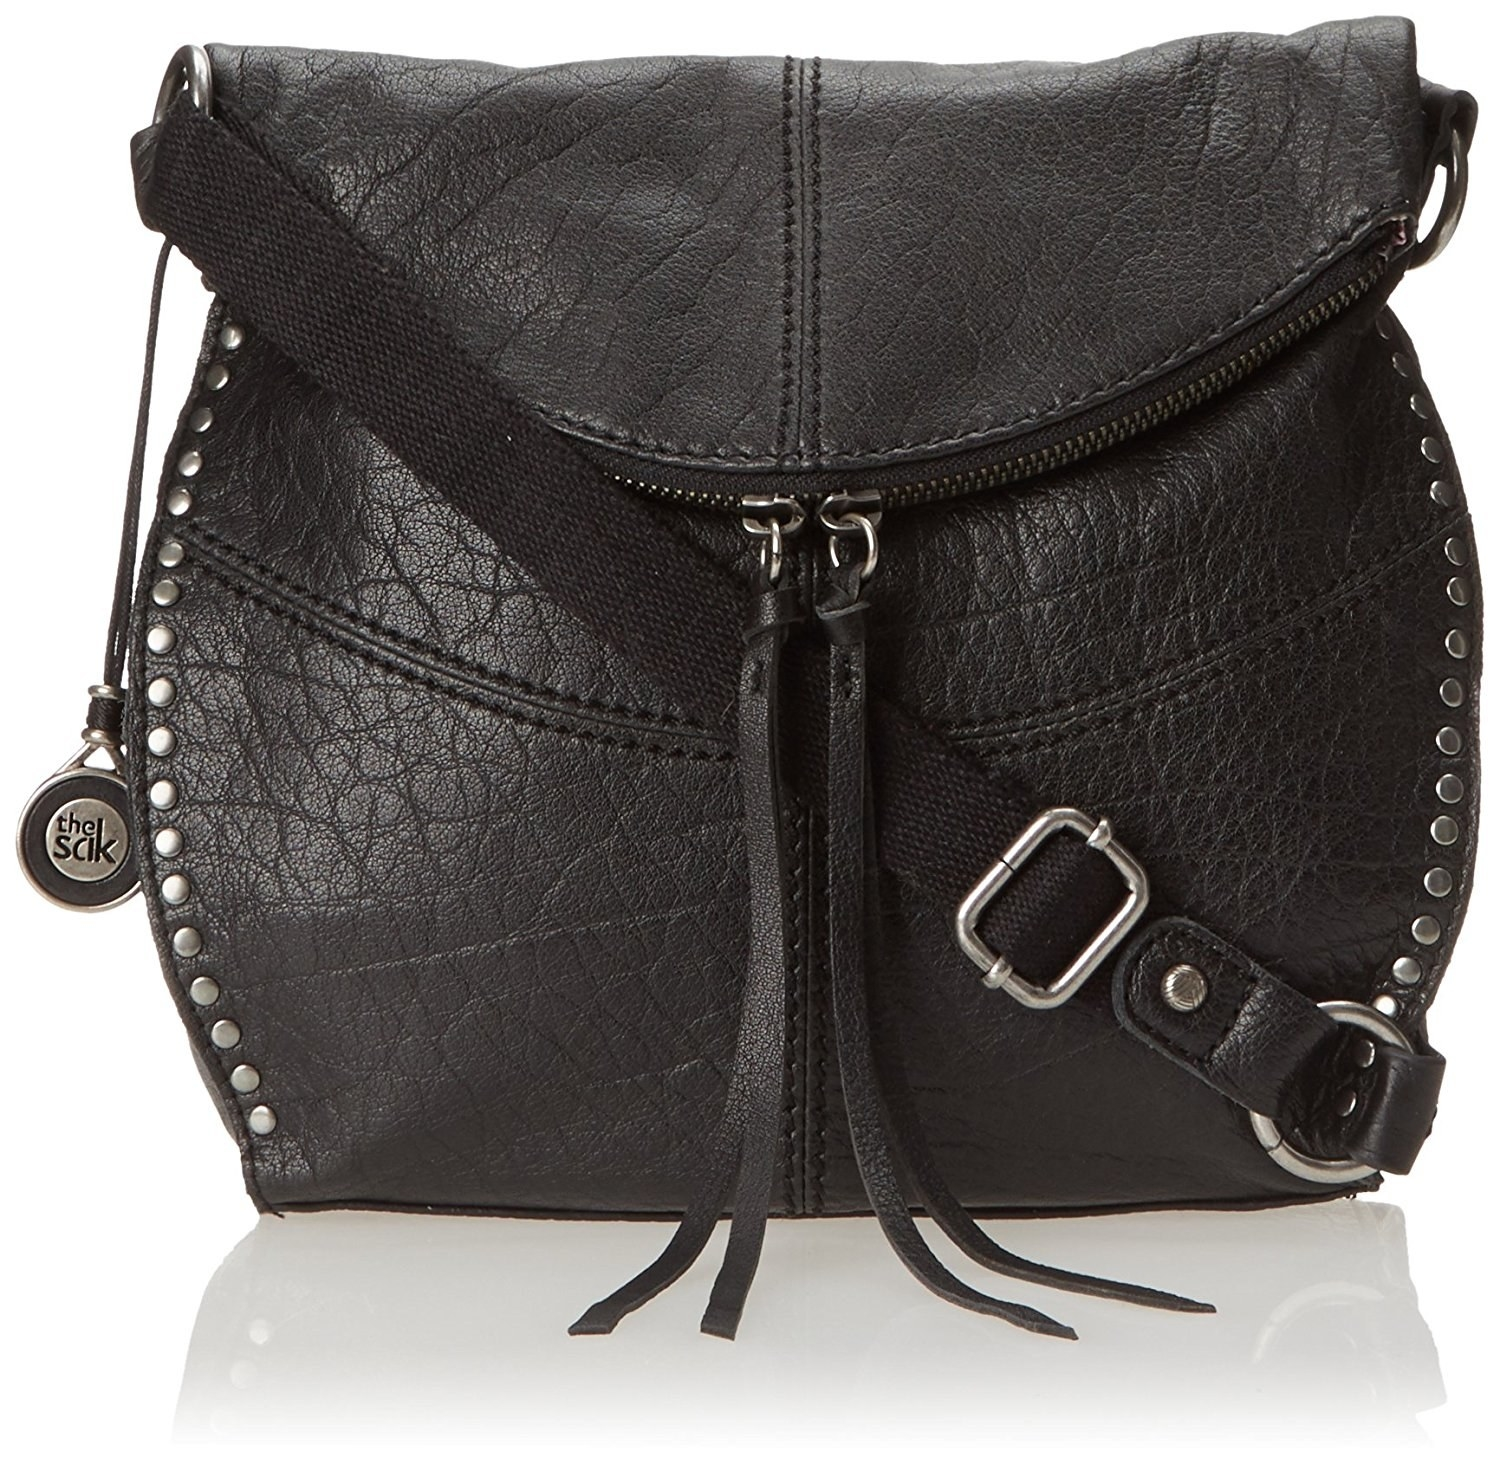 d2d694185e17 A crossbody with silver hardware to add some edginess to an ensemble.